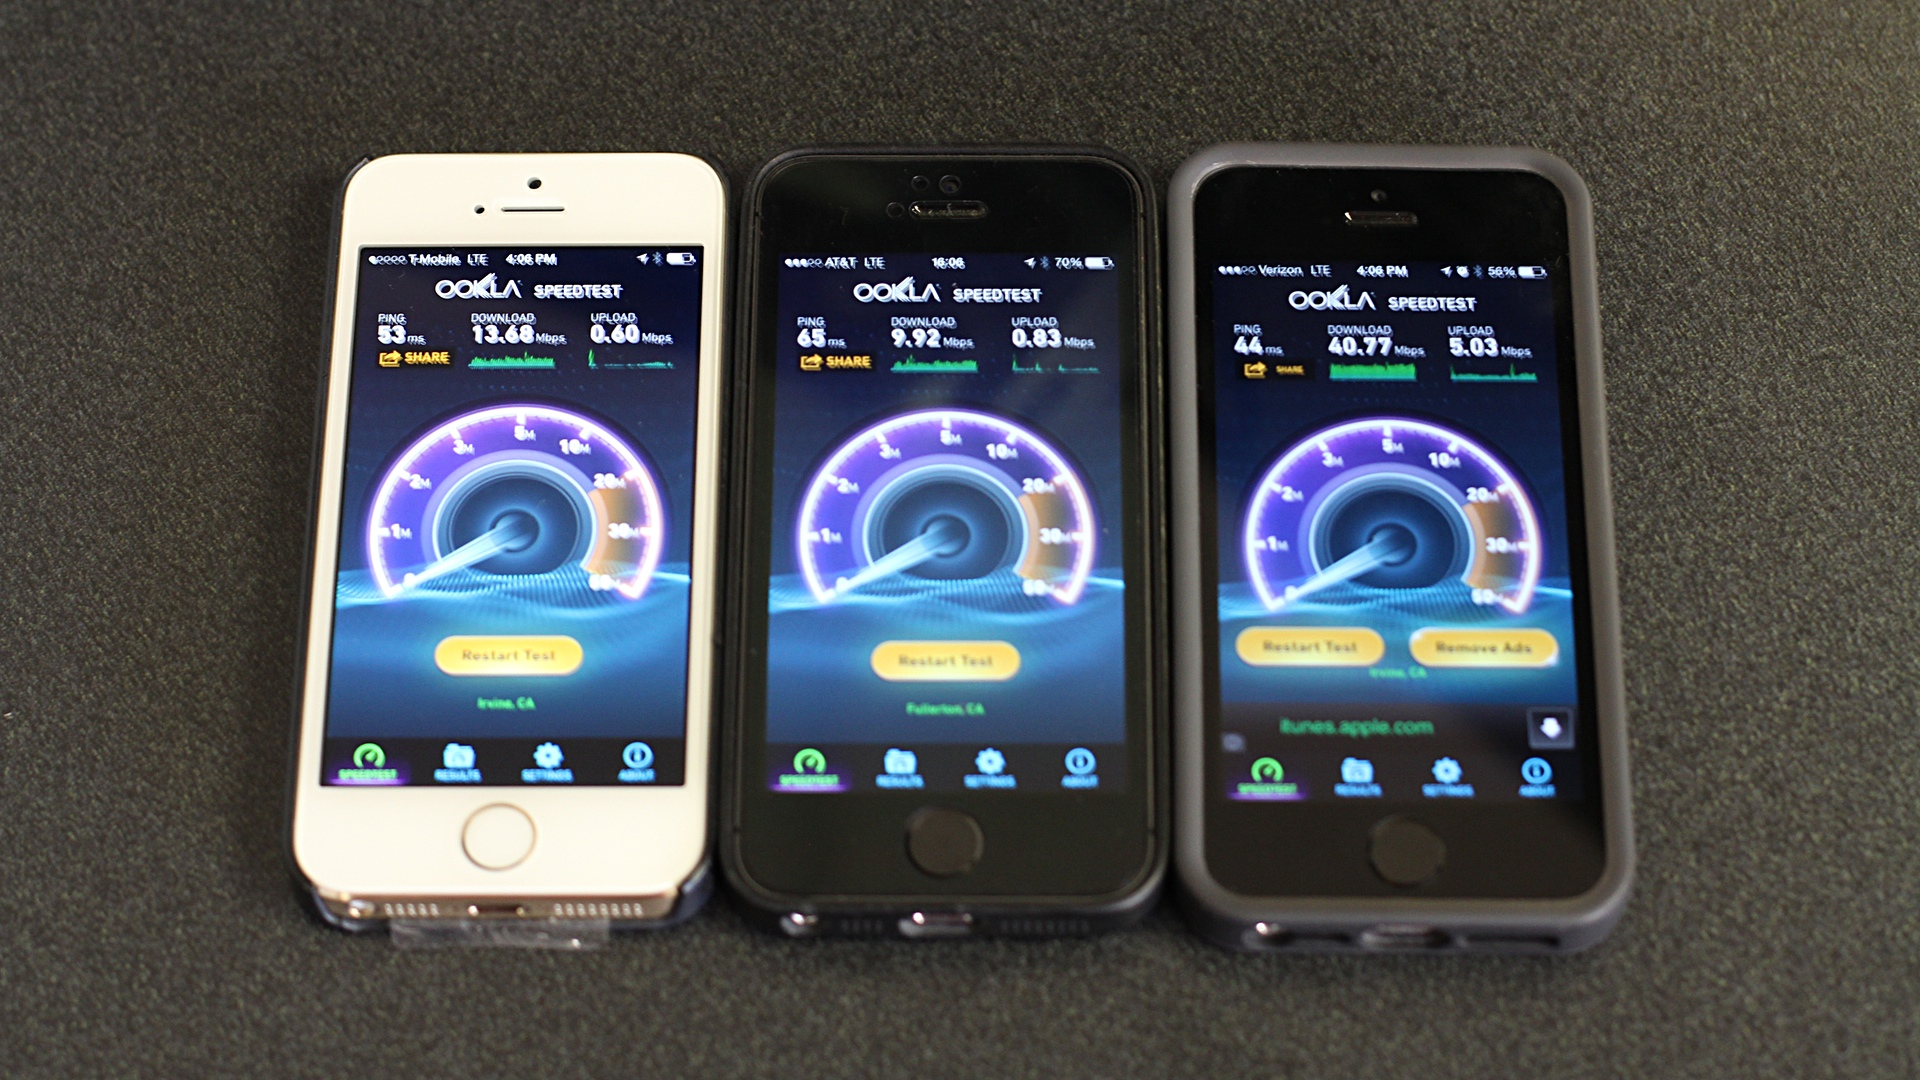 iPhone 5s on T-Mobile, AT&T, and Verizon